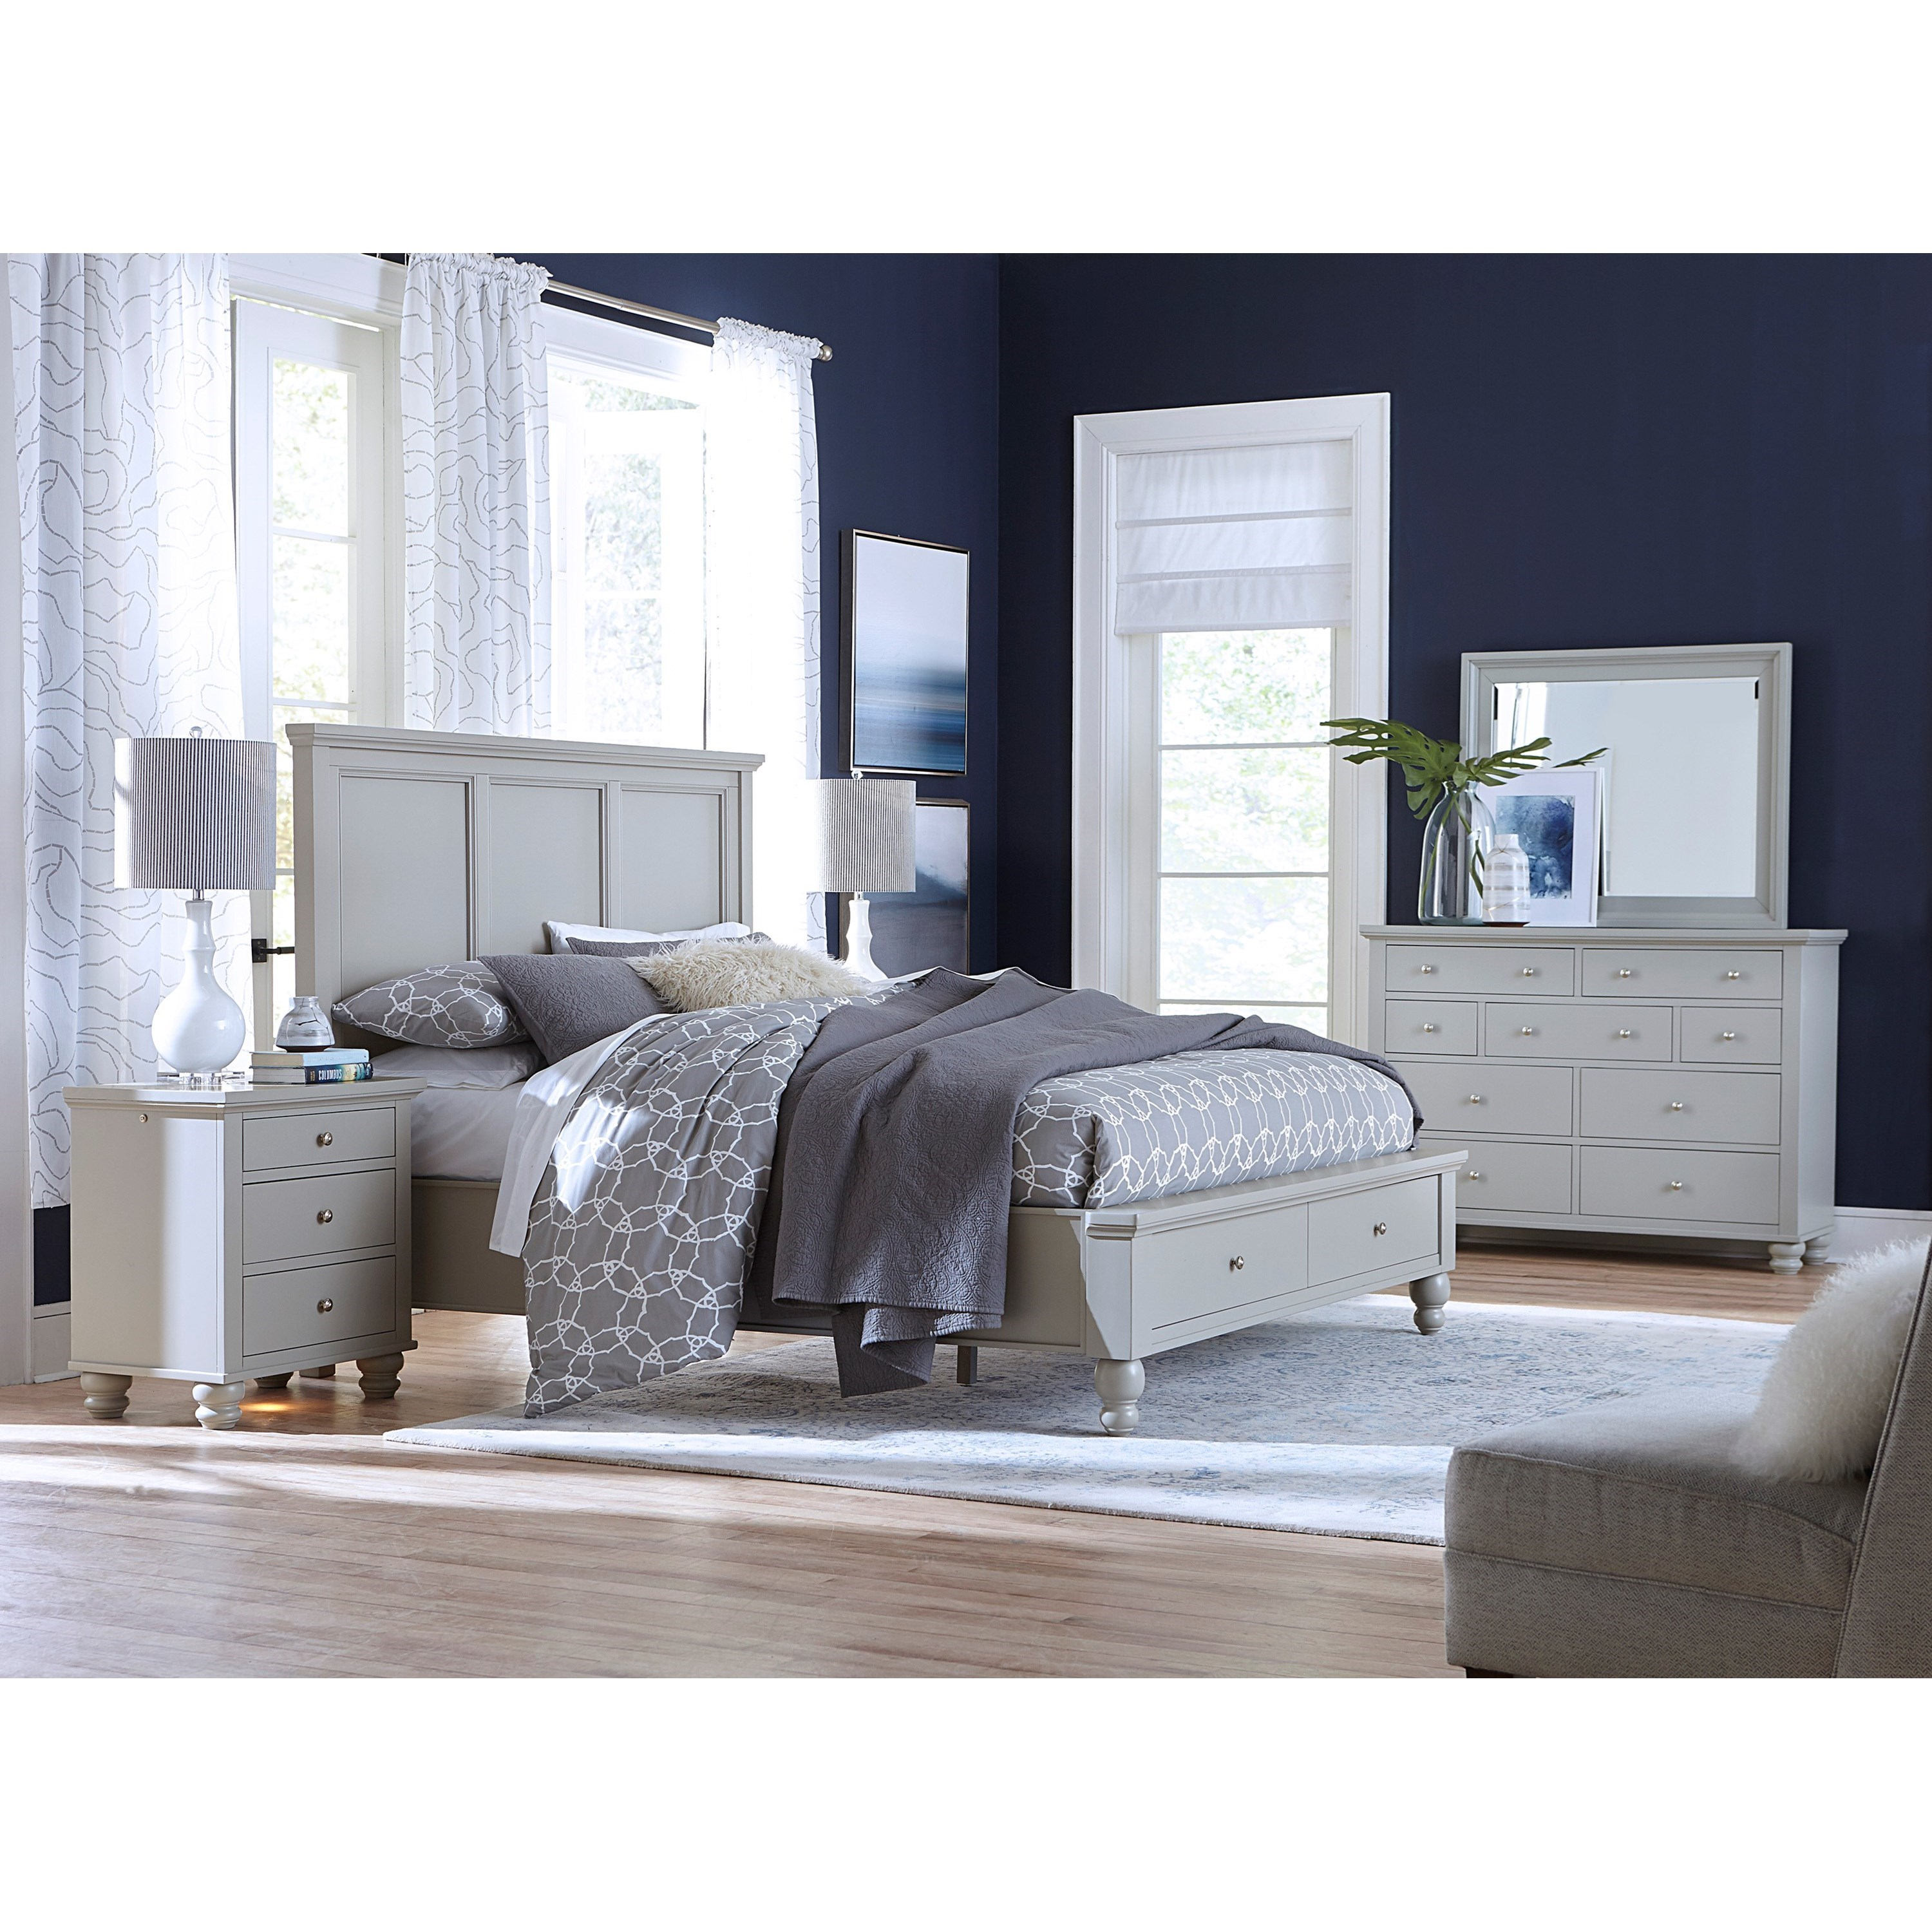 Cambridge Queen Bedroom Group by Aspenhome at Baer's Furniture